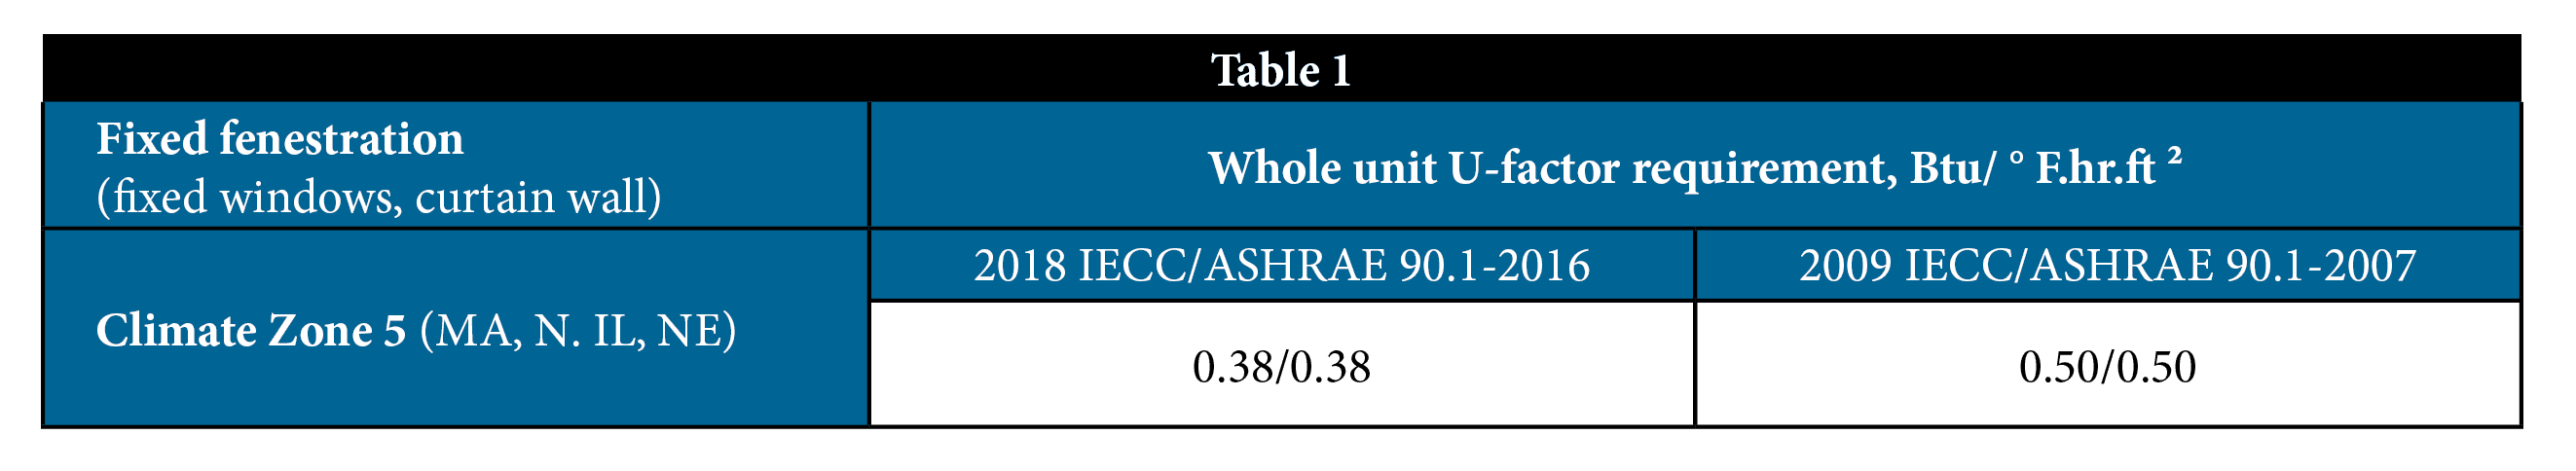 Schemmer-Table 1- 2009 IECC and 2018 IECC fenestration requirements